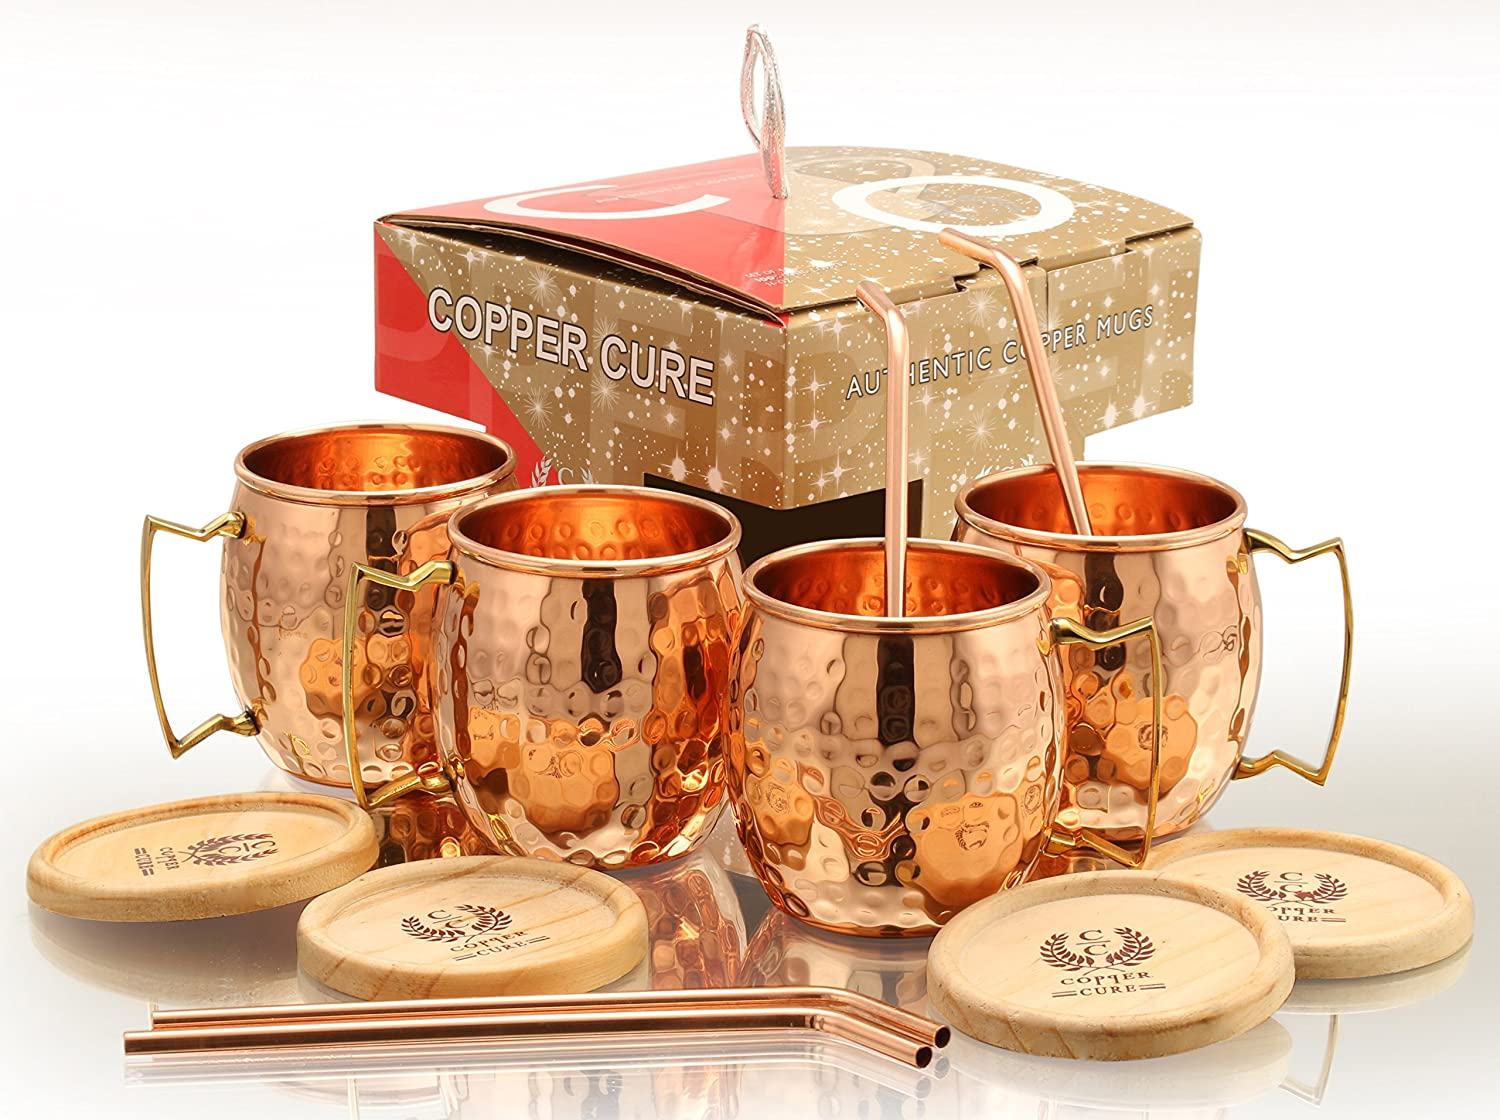 Moscow Mule Copper Mugs With BONUS Copper Straws & Coasters - 16 Oz Moscow Mule Copper Mugs – 100% Solid Copper Hammered Mug - Set of 4 (GIFT SET) Copper Cups for Moscow Mule by Copper Cure